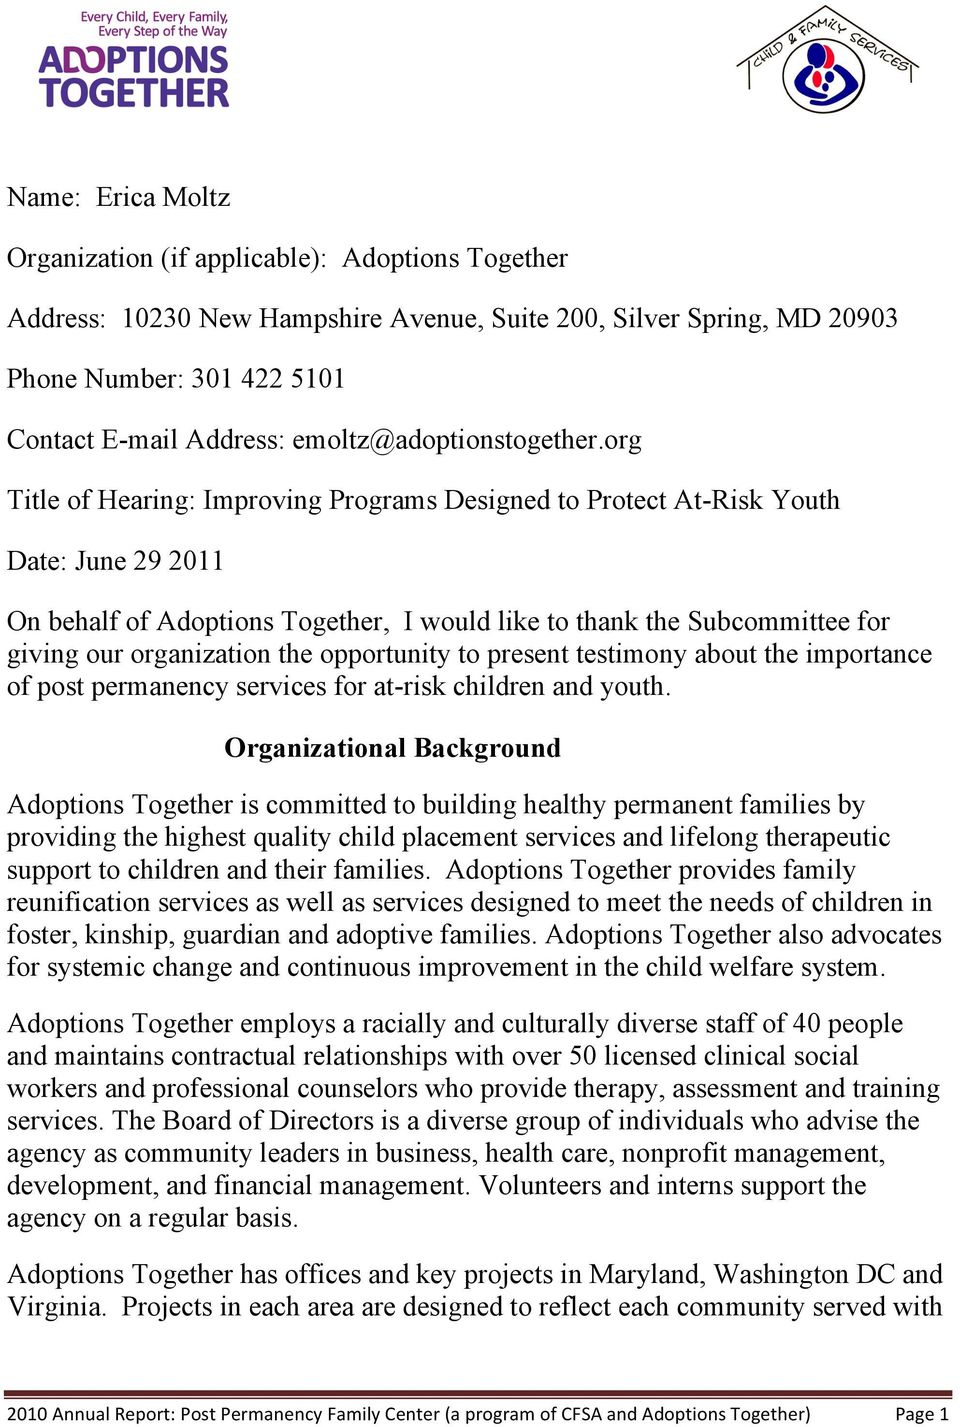 org Title of Hearing: Improving Programs Designed to Protect At-Risk Youth Date: June 29 2011 On behalf of Adoptions Together, I would like to thank the Subcommittee for giving our organization the